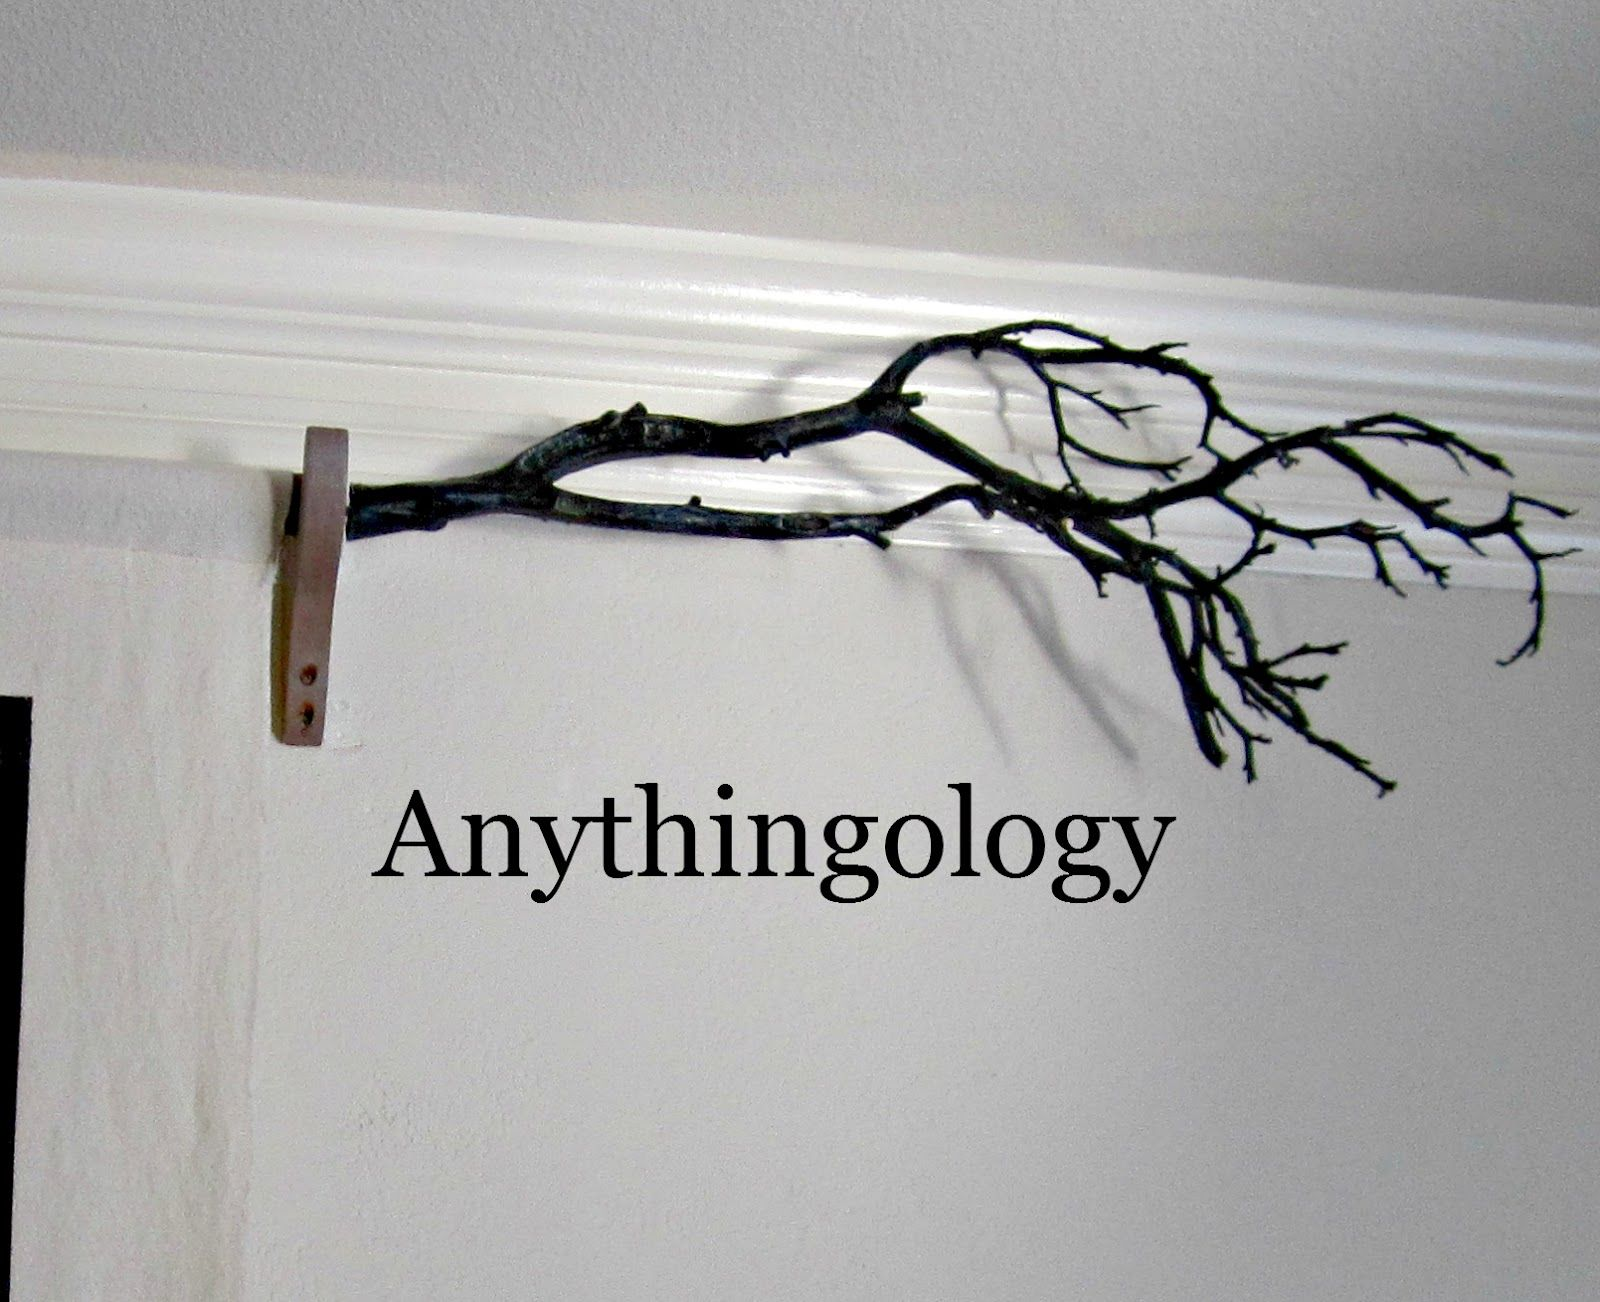 Tree Branch As Curtain Rod Finials Just Add A Double Ended Screw Finials For Curtain Rods Curtain Rods Branch Curtain Rods